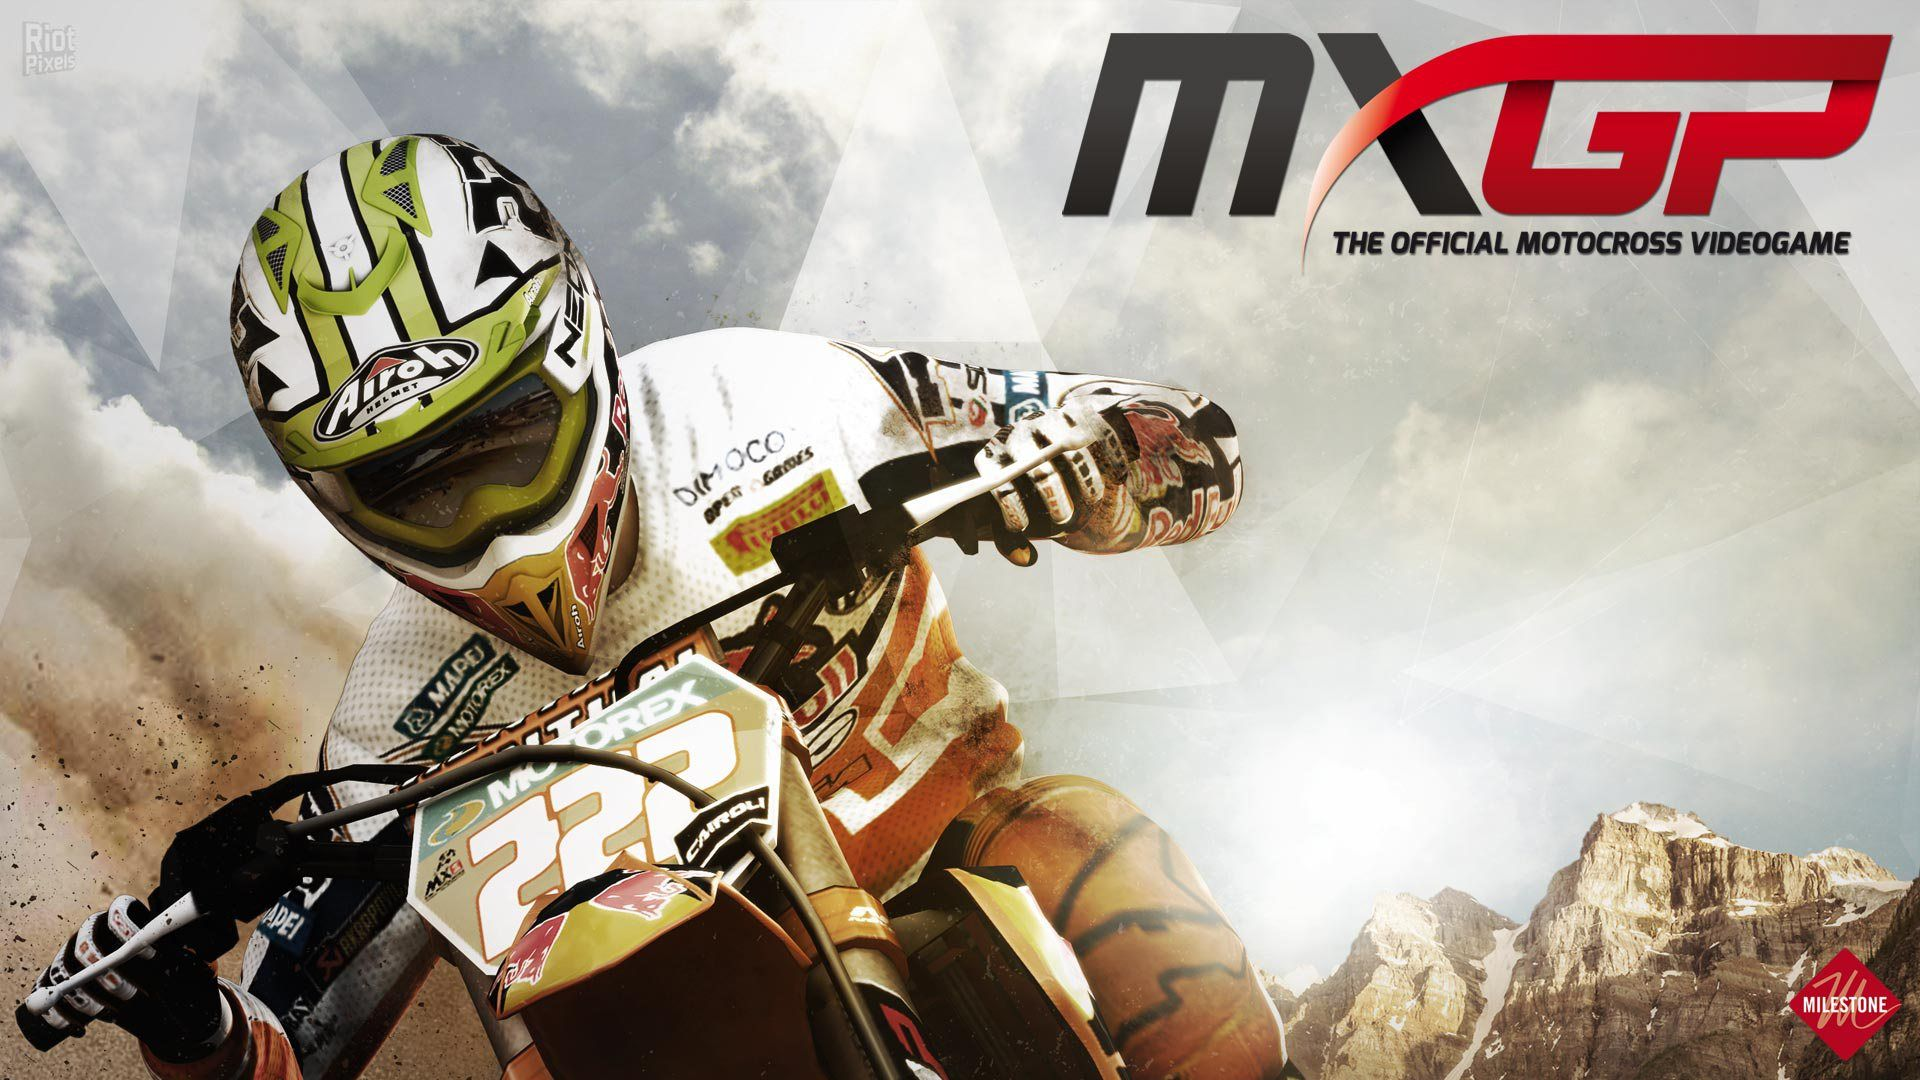 Is Meek Mill Excited About This Dirt Bike Game Dirt Bike Games Bikes Games Videogames